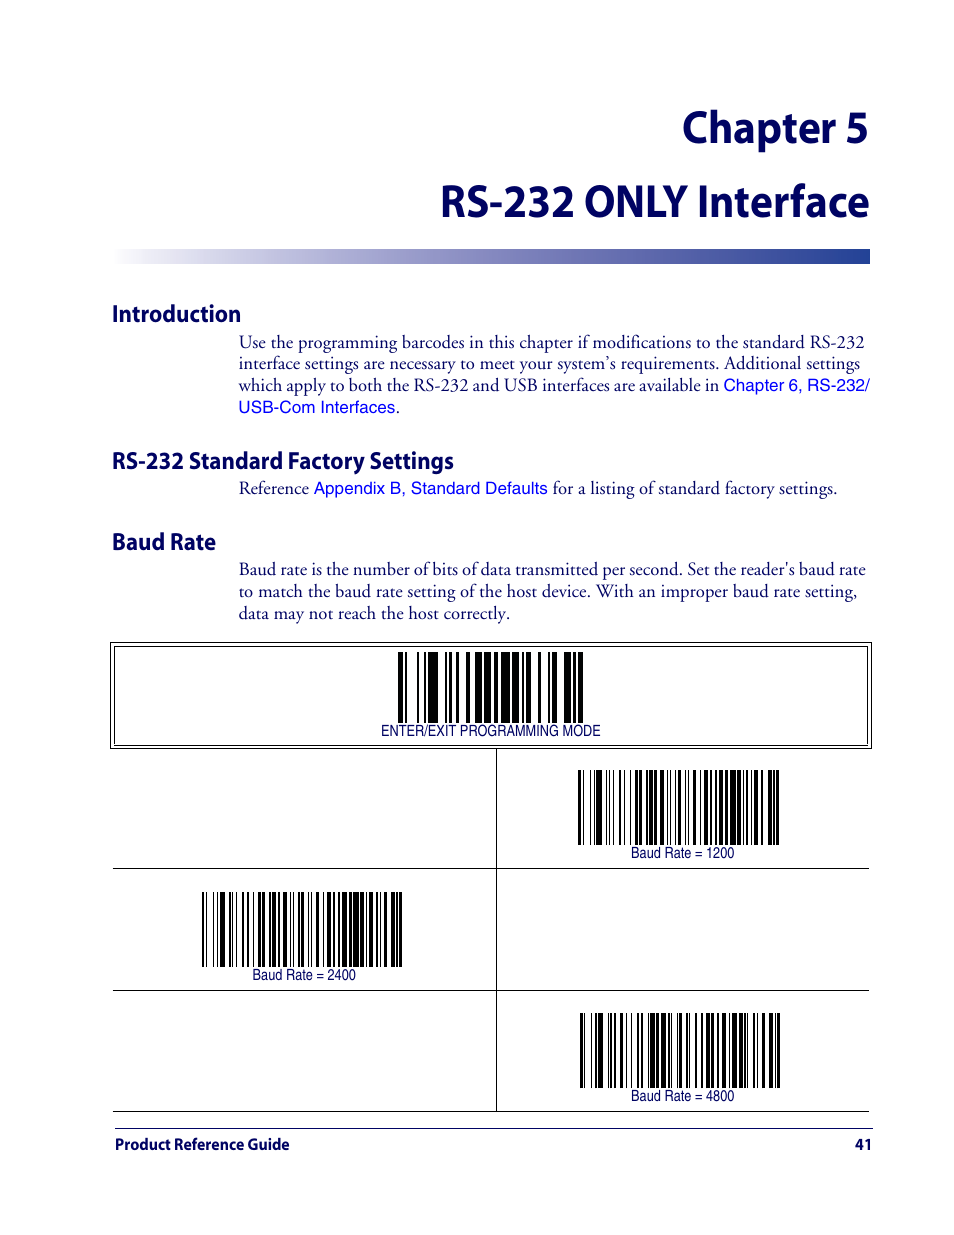 Chapter 5 rs-232 only interface | Datalogic Scanning QUICKSCAN QD2100 User  Manual | Page